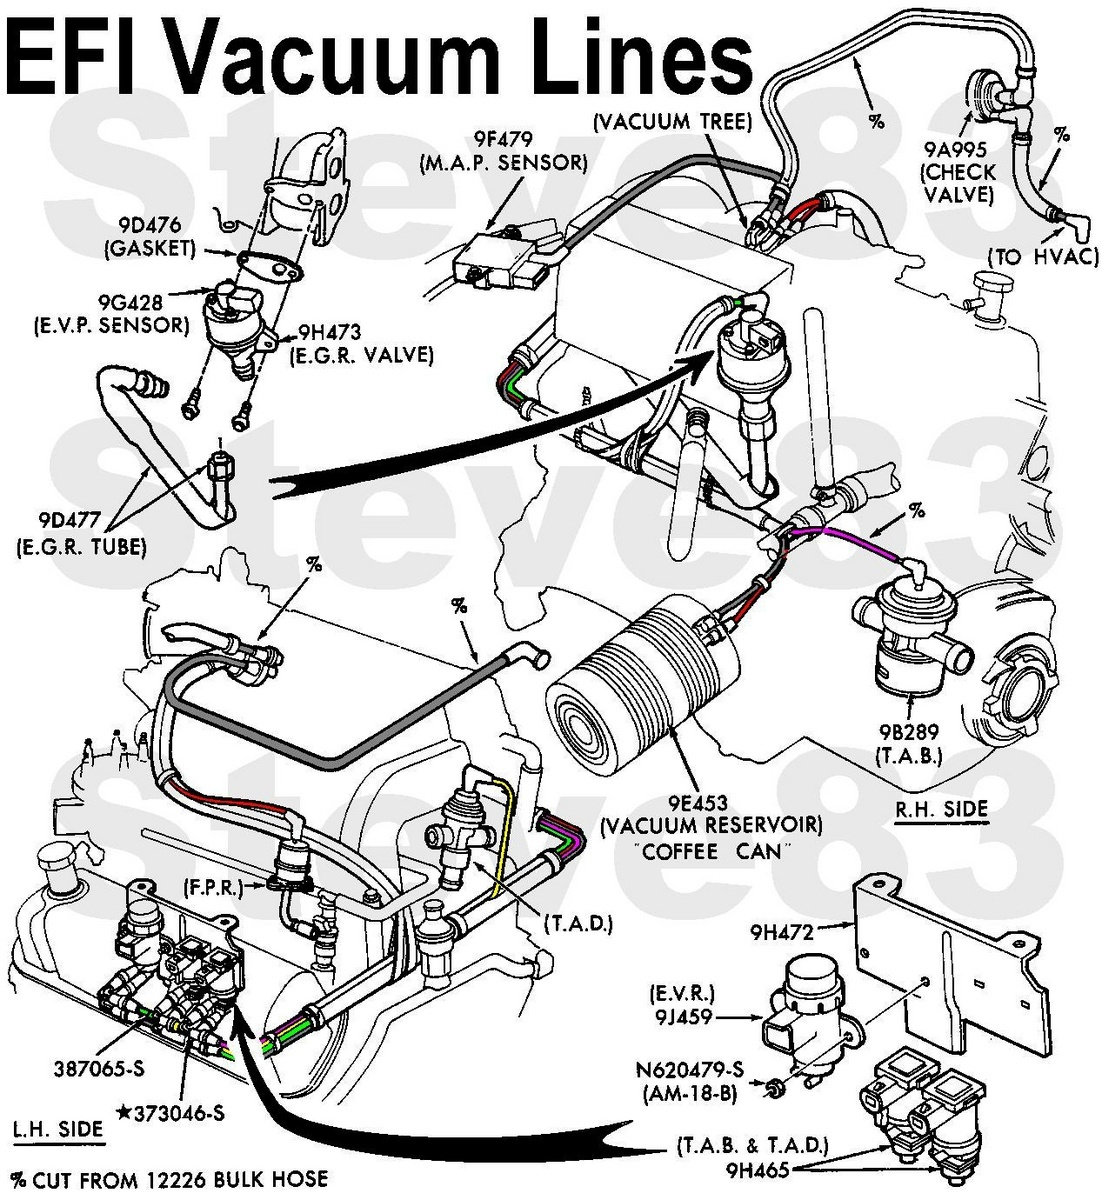 1446222 460 Efi Vacuum Diagram additionally 2006 Chevrolet Silverado Front Bumper Parts Diagram Html as well Where Can Coolant Leak Rear Engine 128345 additionally 4 3 Vortec Fuel Line Retainer 151172 moreover Oil Filter Adapter P N F75z 6881 Ha No Longer Available 203310. on 05 f150 4x4 vacuum lines